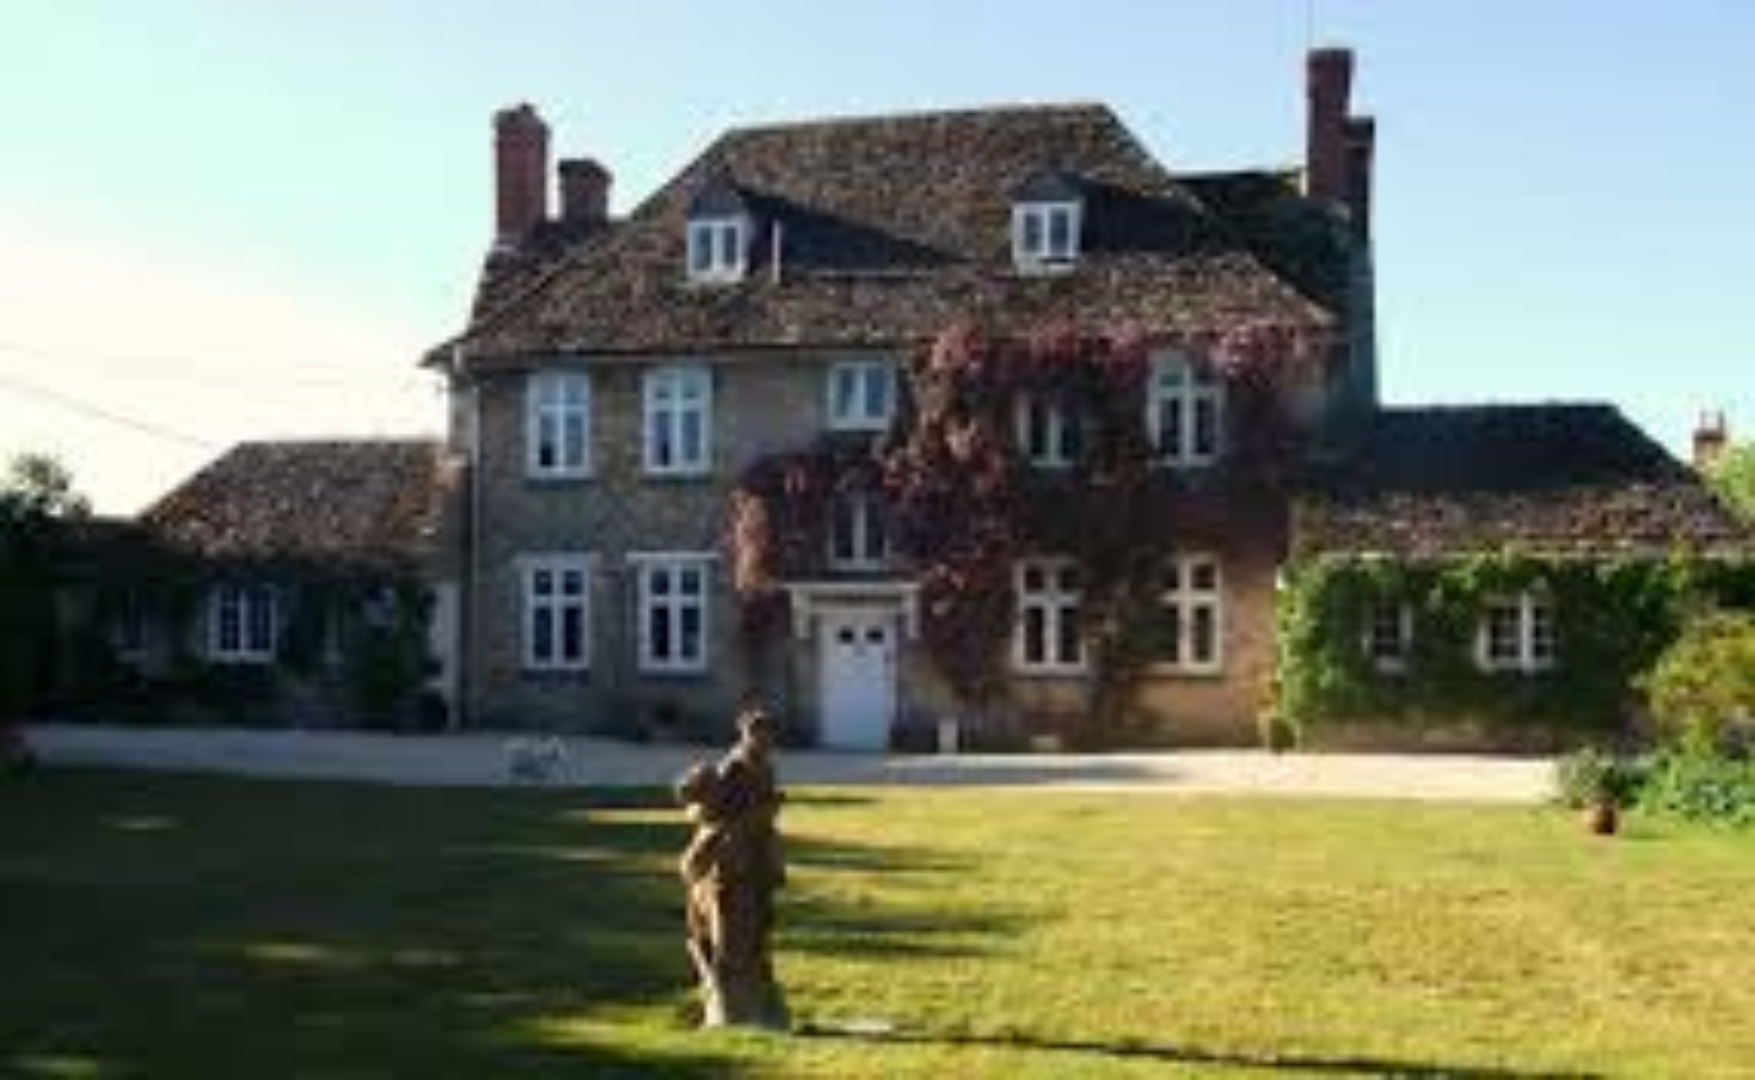 A large brick building with grass in front of a house at Buscot Manor.